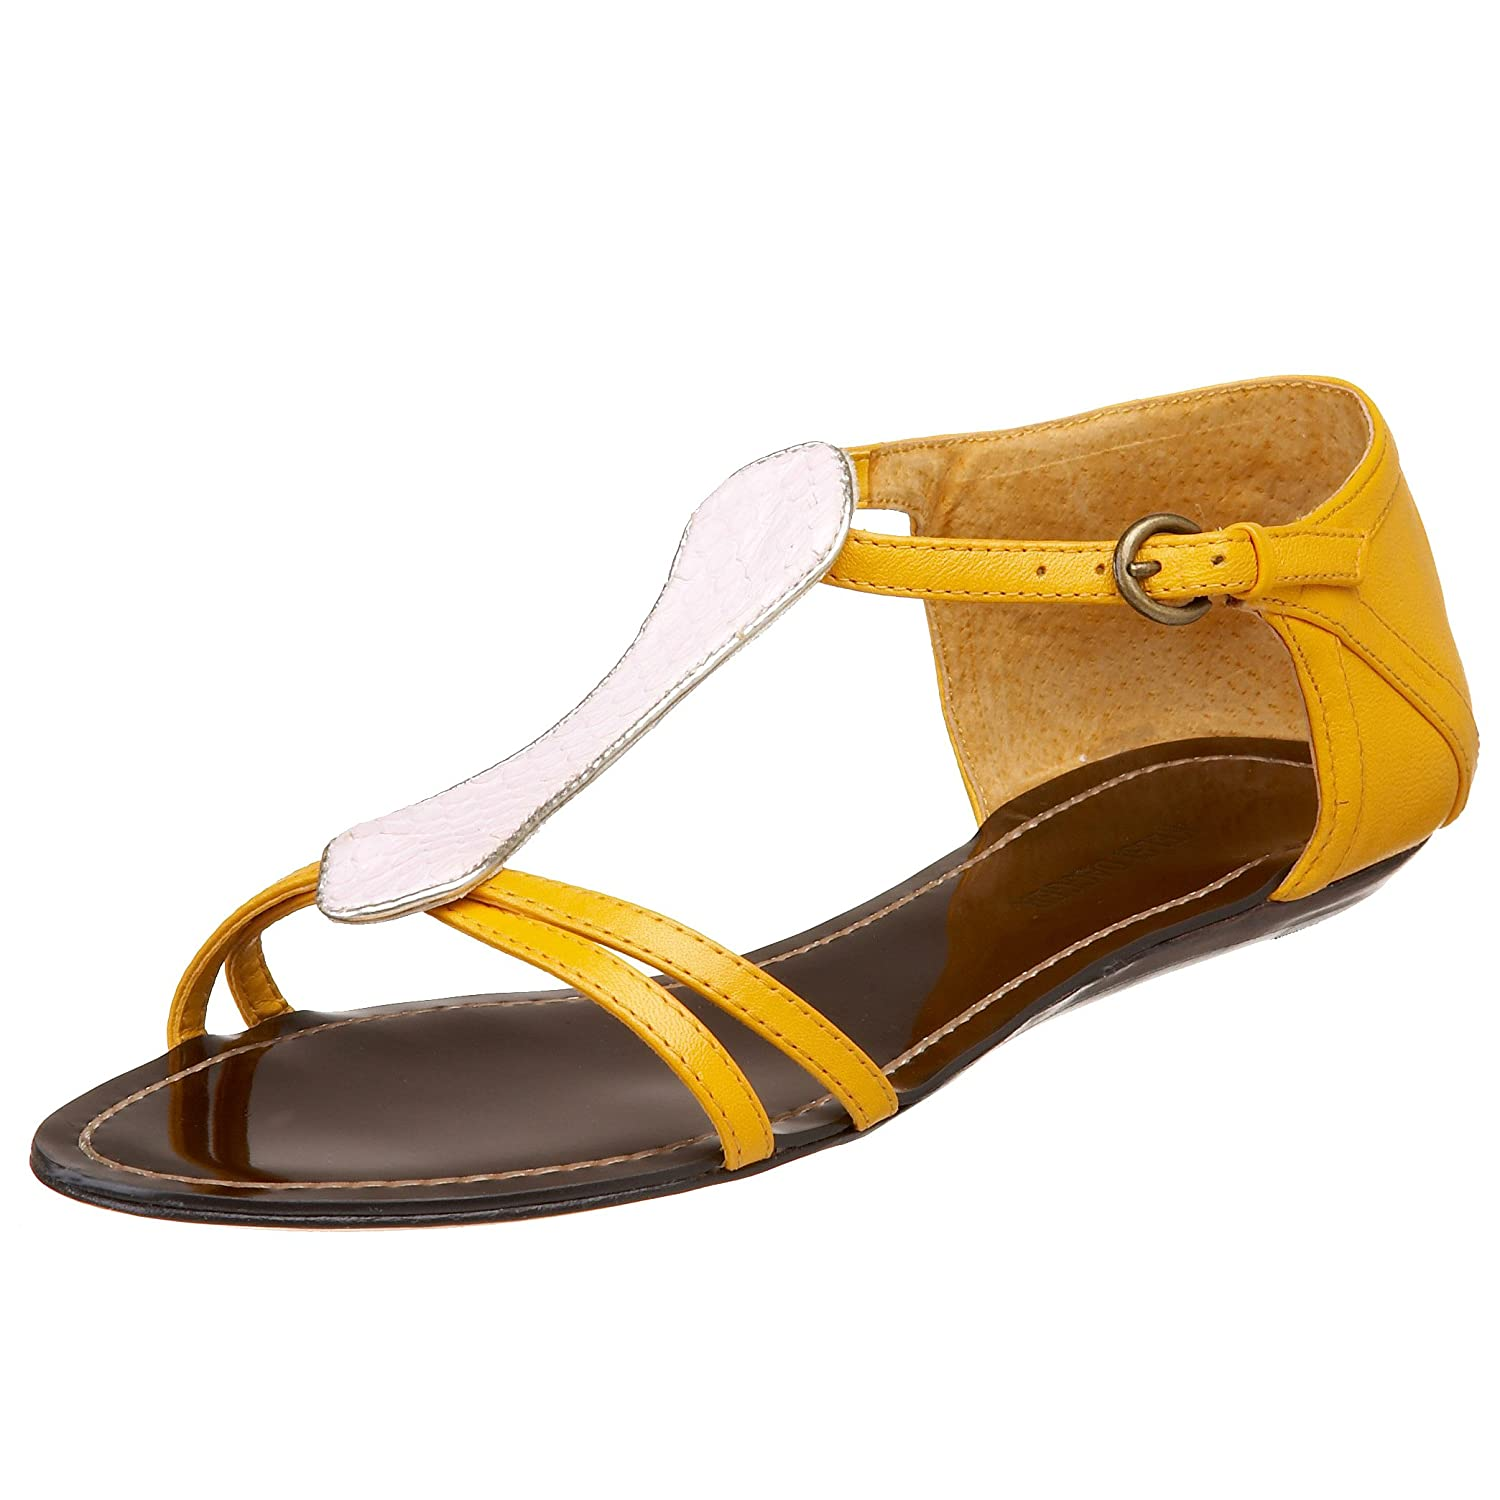 Kelsi Dagger Women's Cara T-Strap Sandal - Free Overnight Shipping & Return Shipping: Endless.com